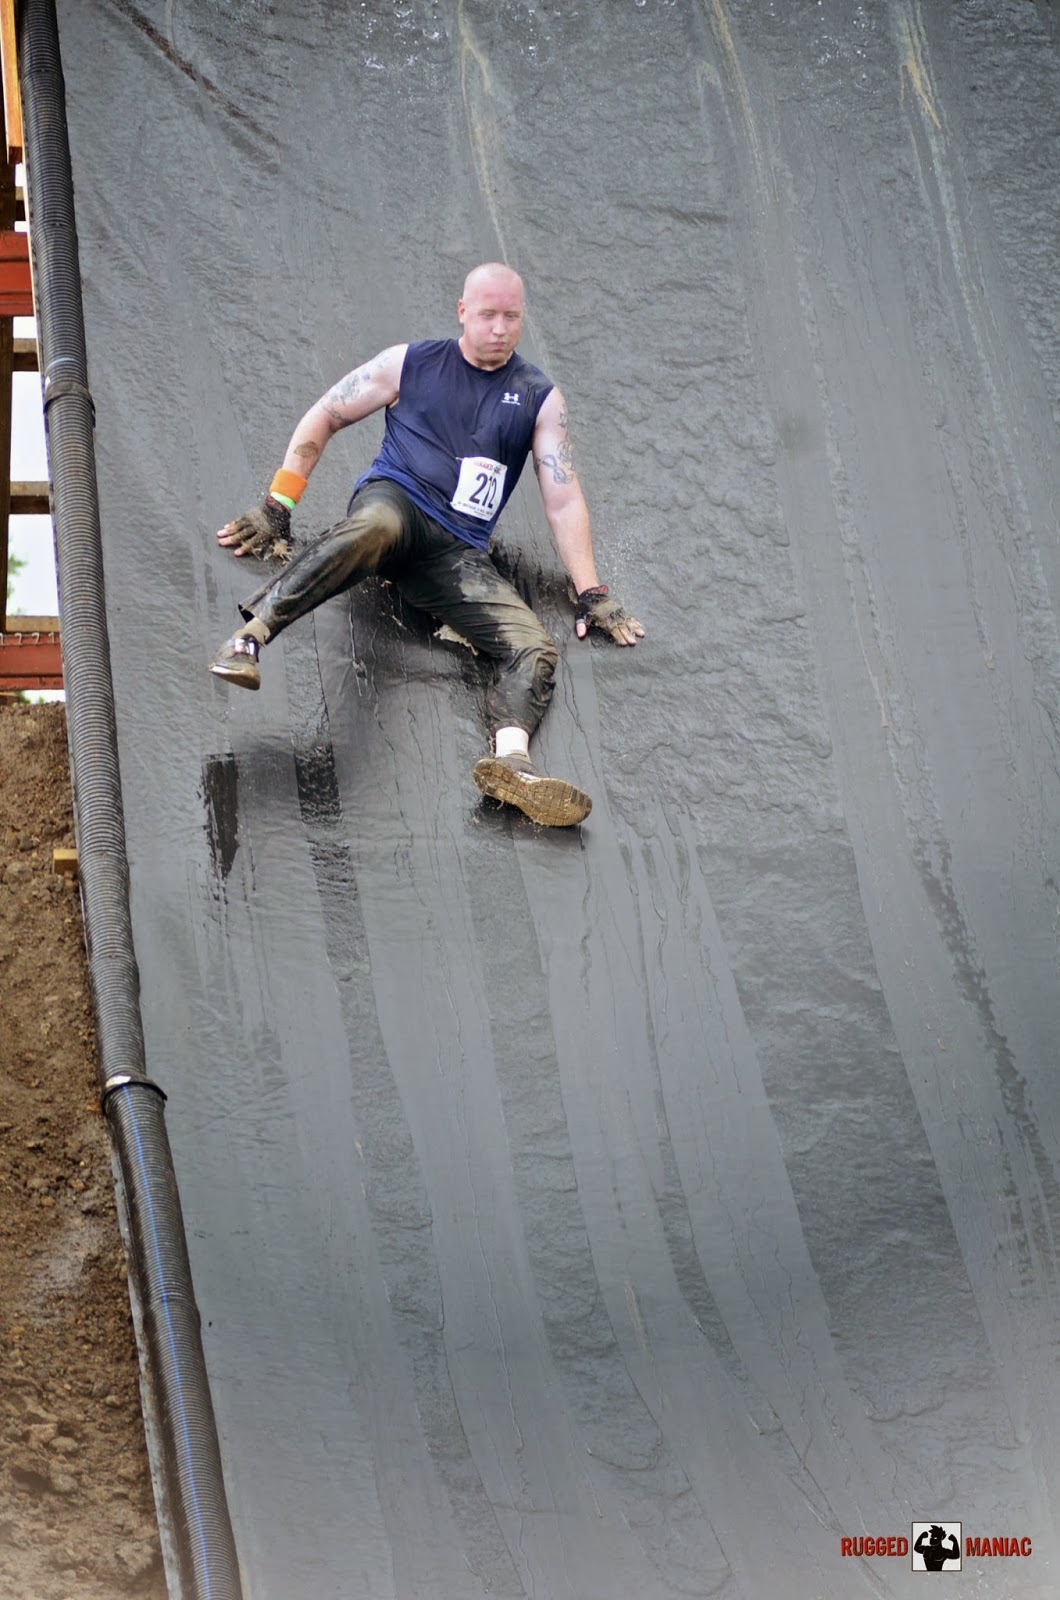 rugged maniac slide